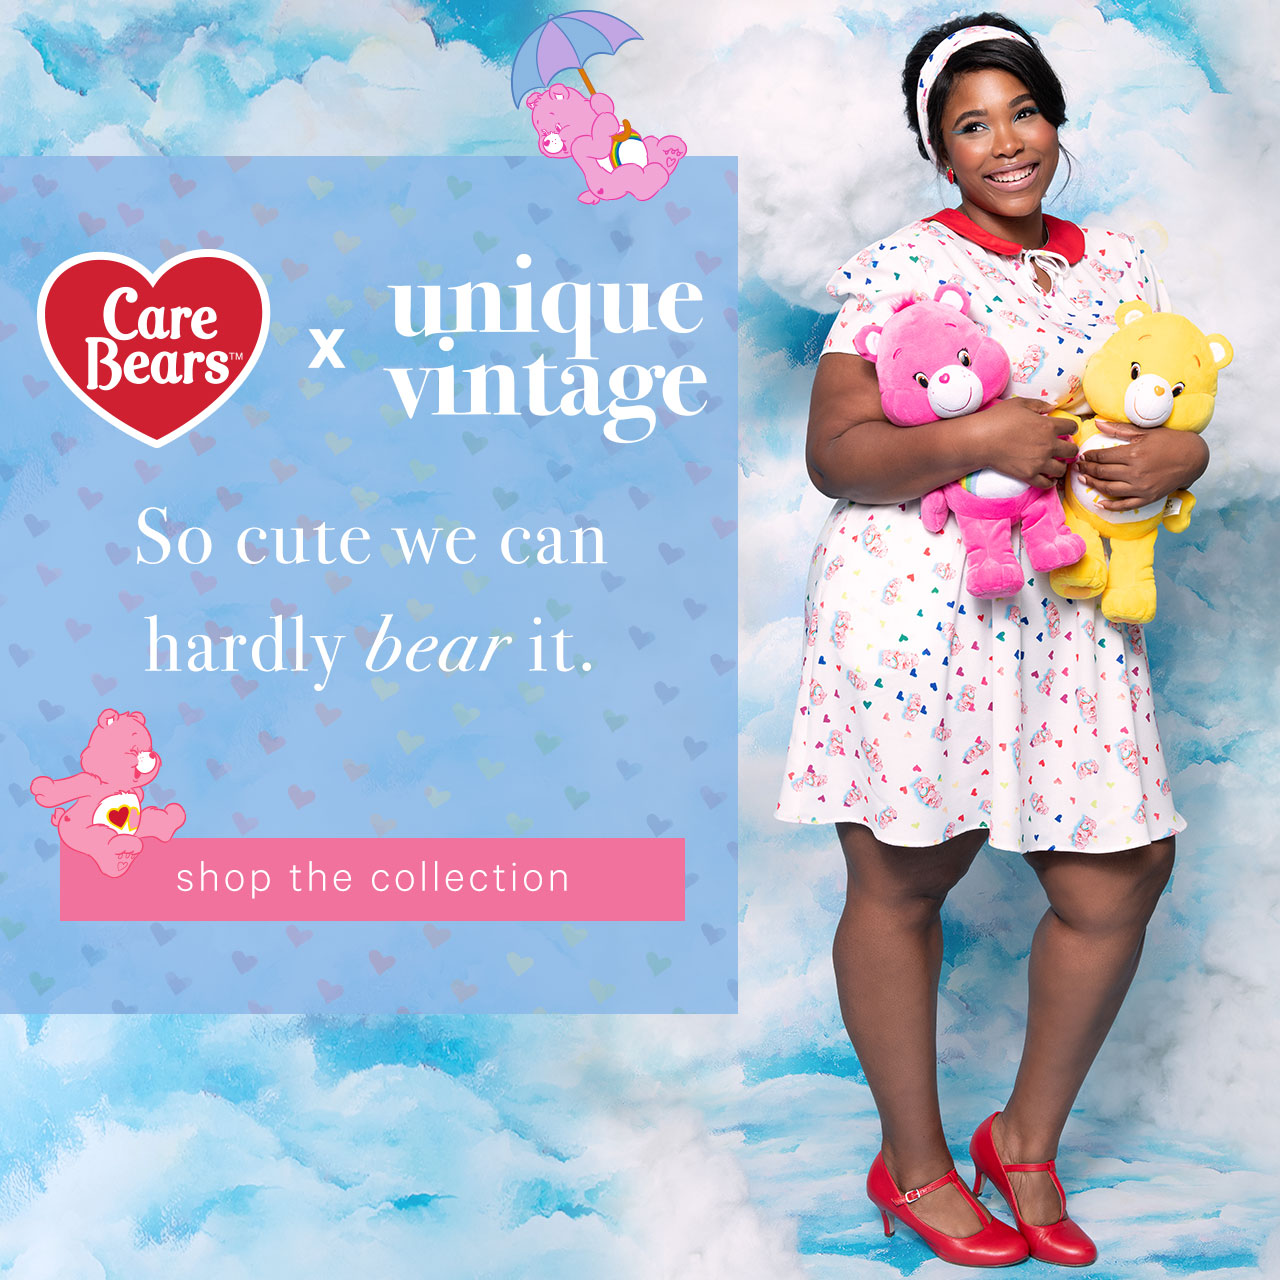 Unique Vintage — Care Bears x Unique Vintage Collection